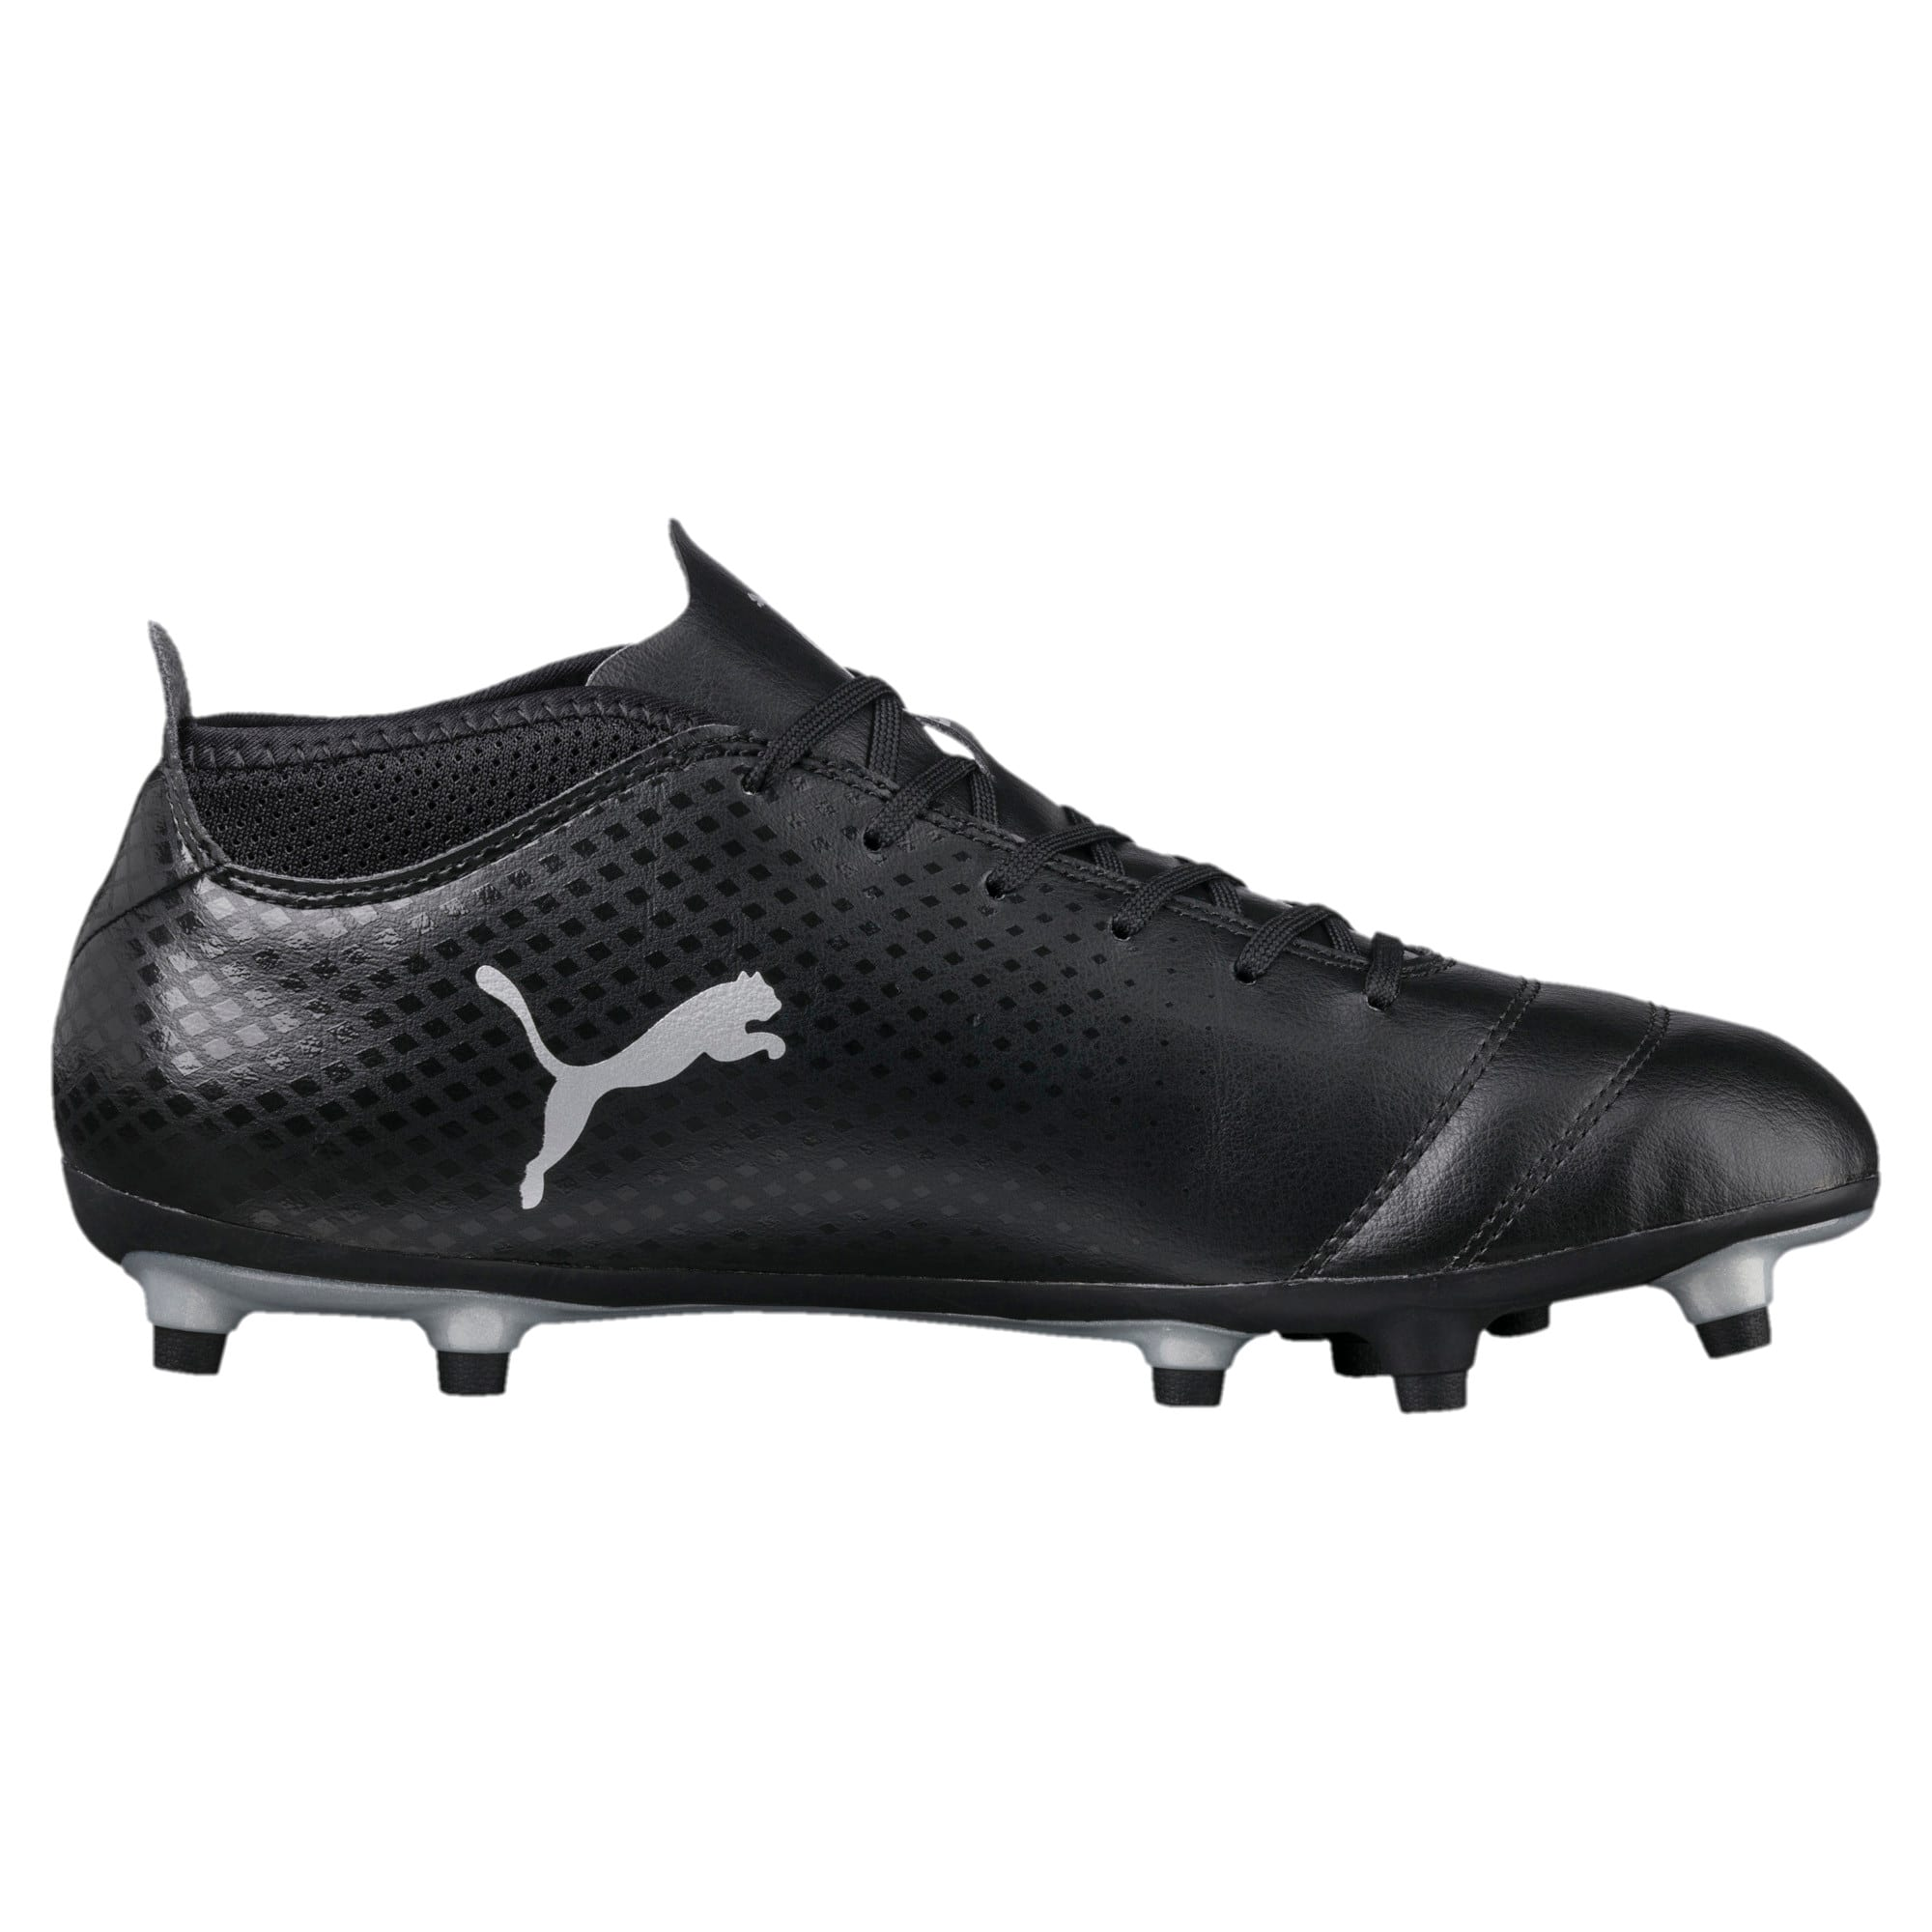 Thumbnail 4 of ONE 17.4 FG Men's Football Boots, Black-Black-Silver, medium-IND